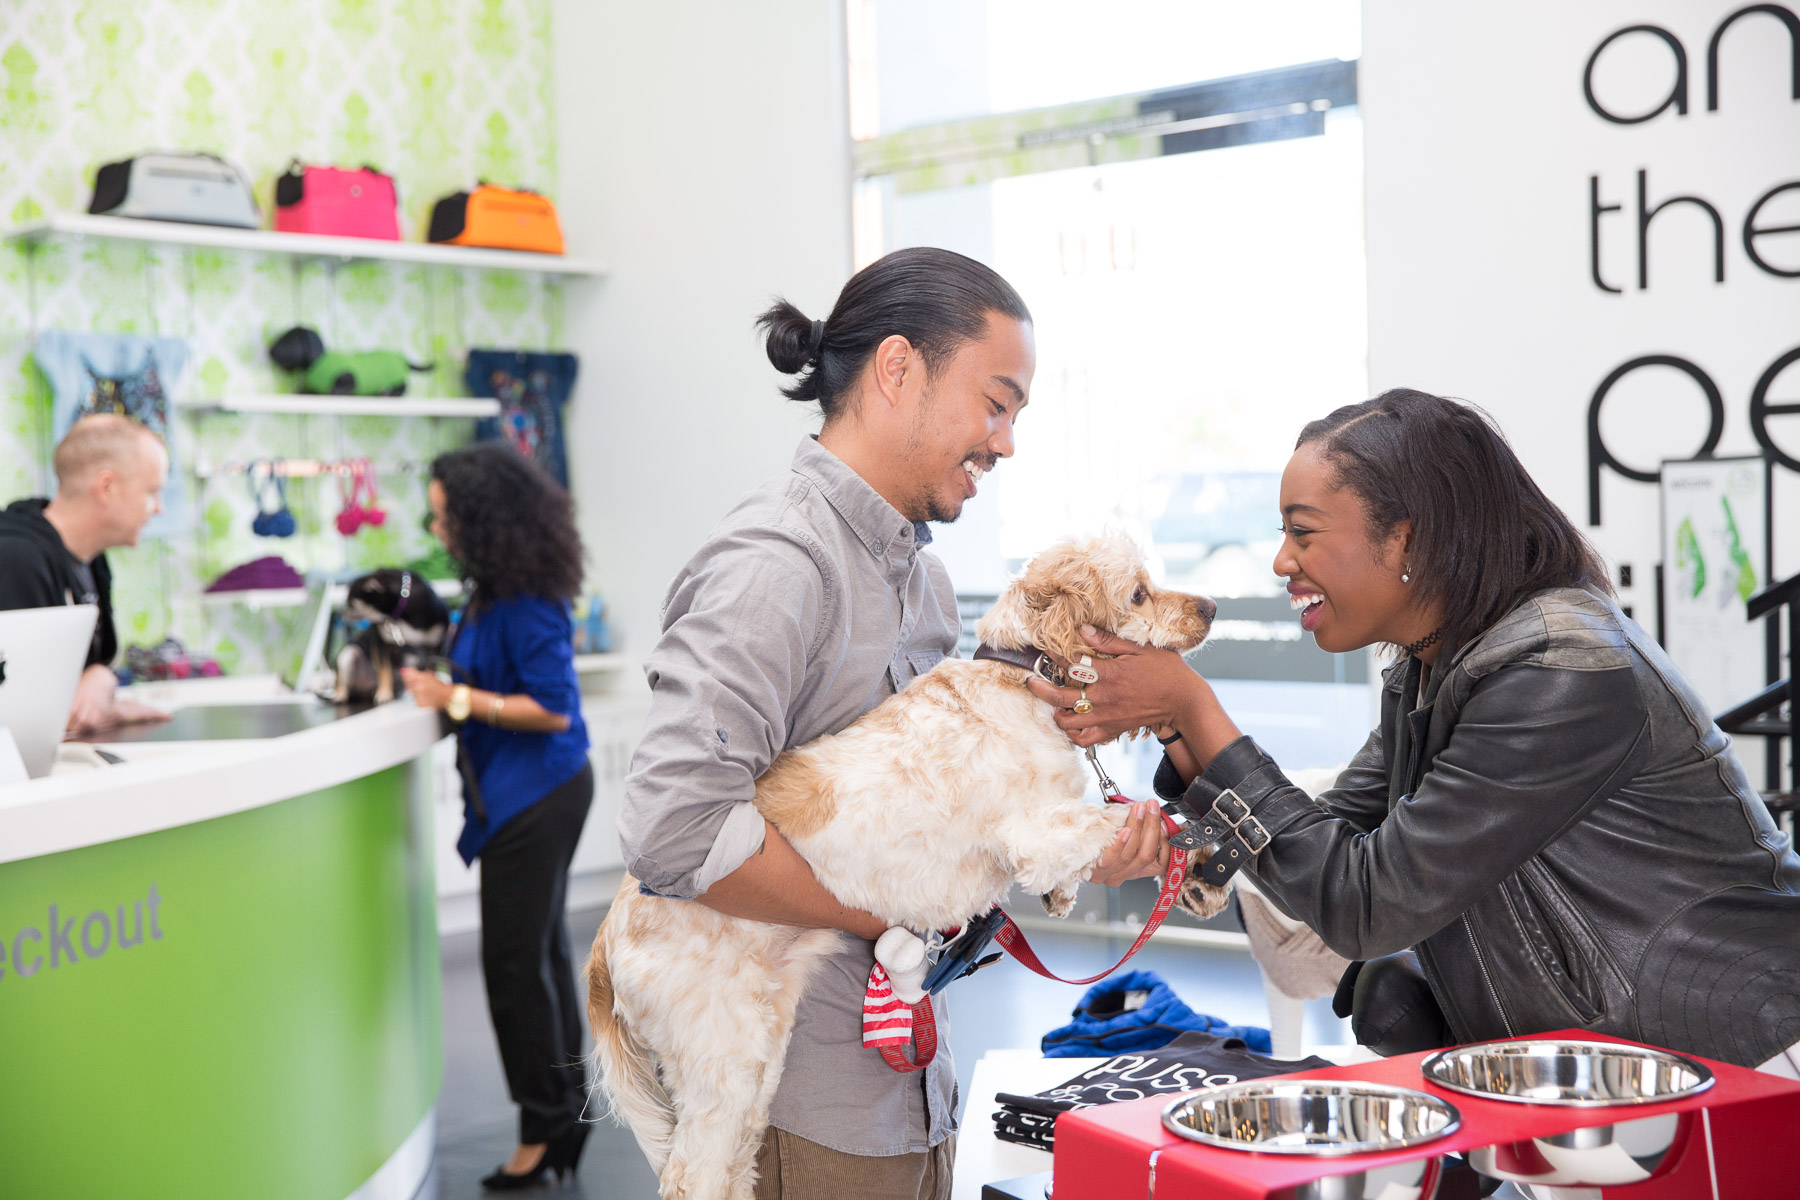 couple-shopping-with-dog-at-pet-store.jpg